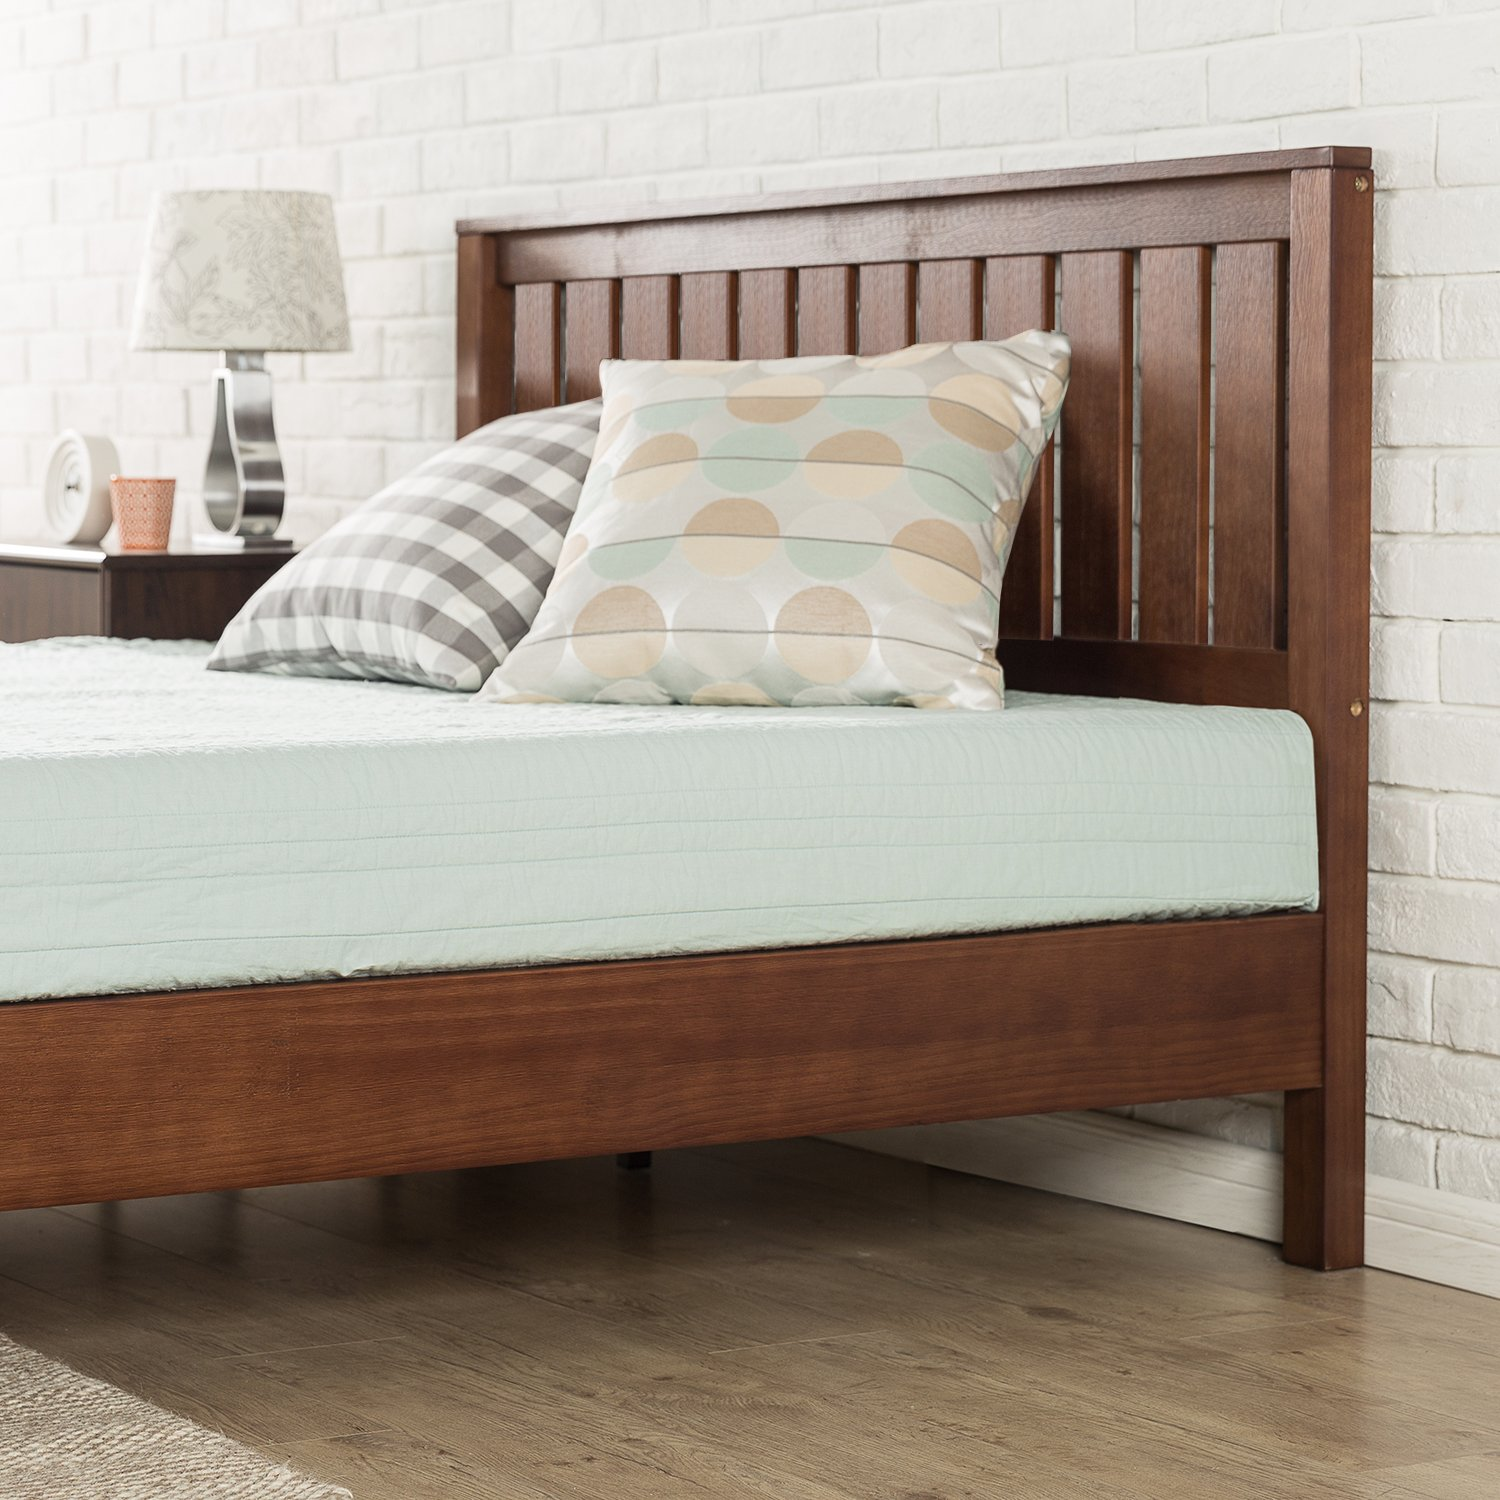 Zinus 12 Inch Deluxe Wood Platform Bed with Headboard / No Box Spring Needed / Wood Slat Support / Antique Espresso Finish, Full by Zinus (Image #4)